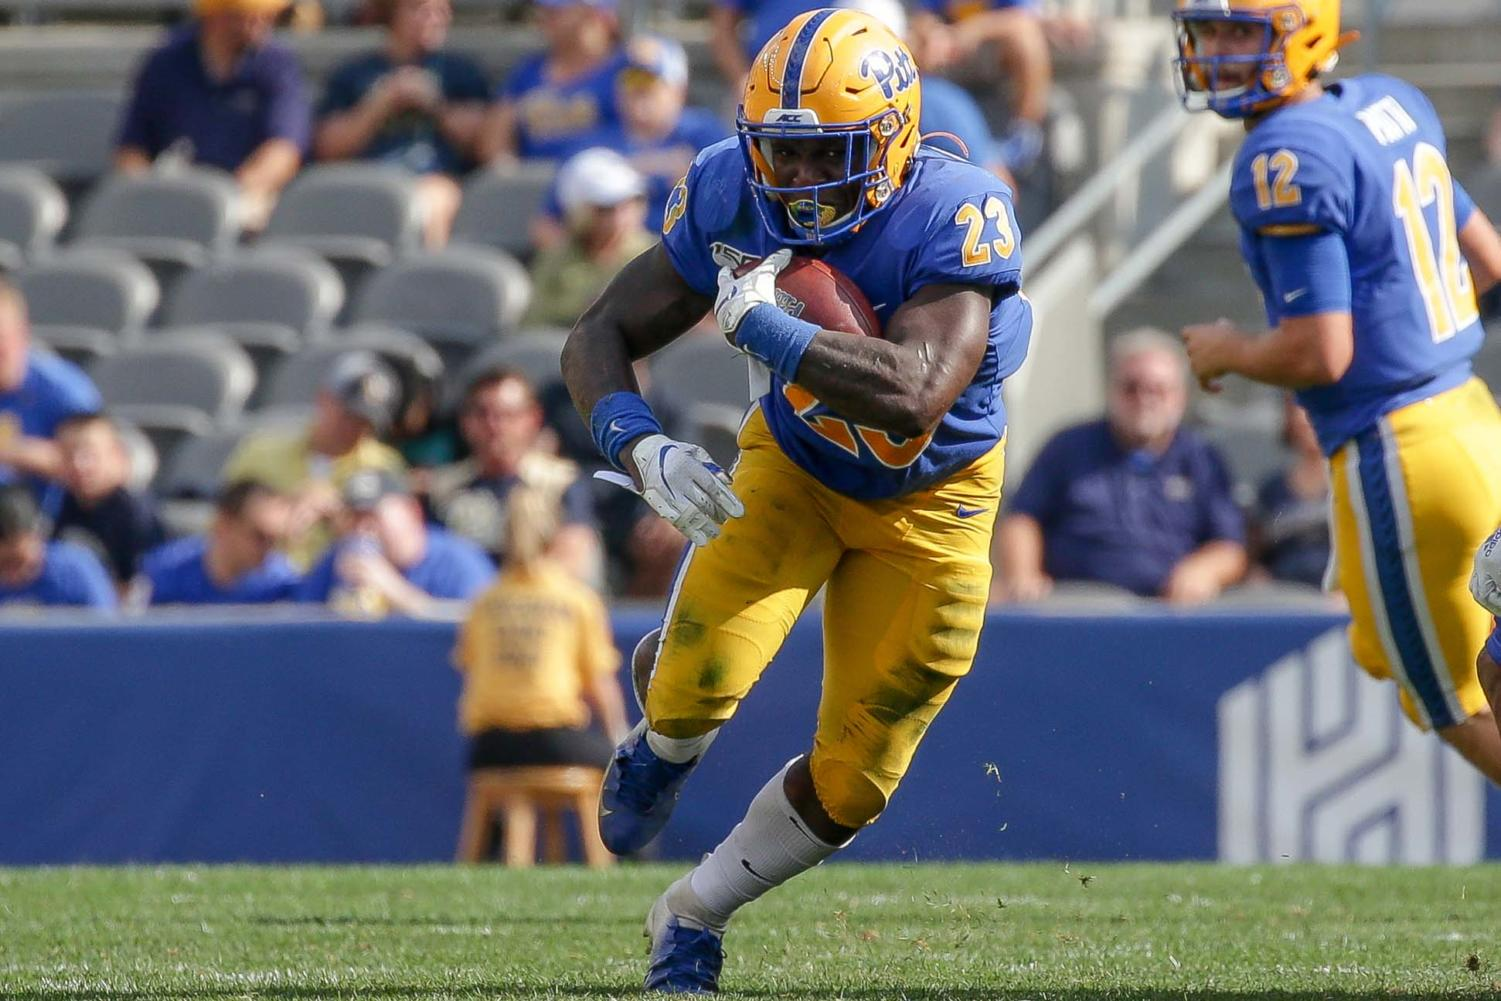 Redshirt sophomore Todd Sibley Jr. put up 106 yards rushing against Delaware on Saturday, making him the first Pitt halfback to break the century mark on a game this season.